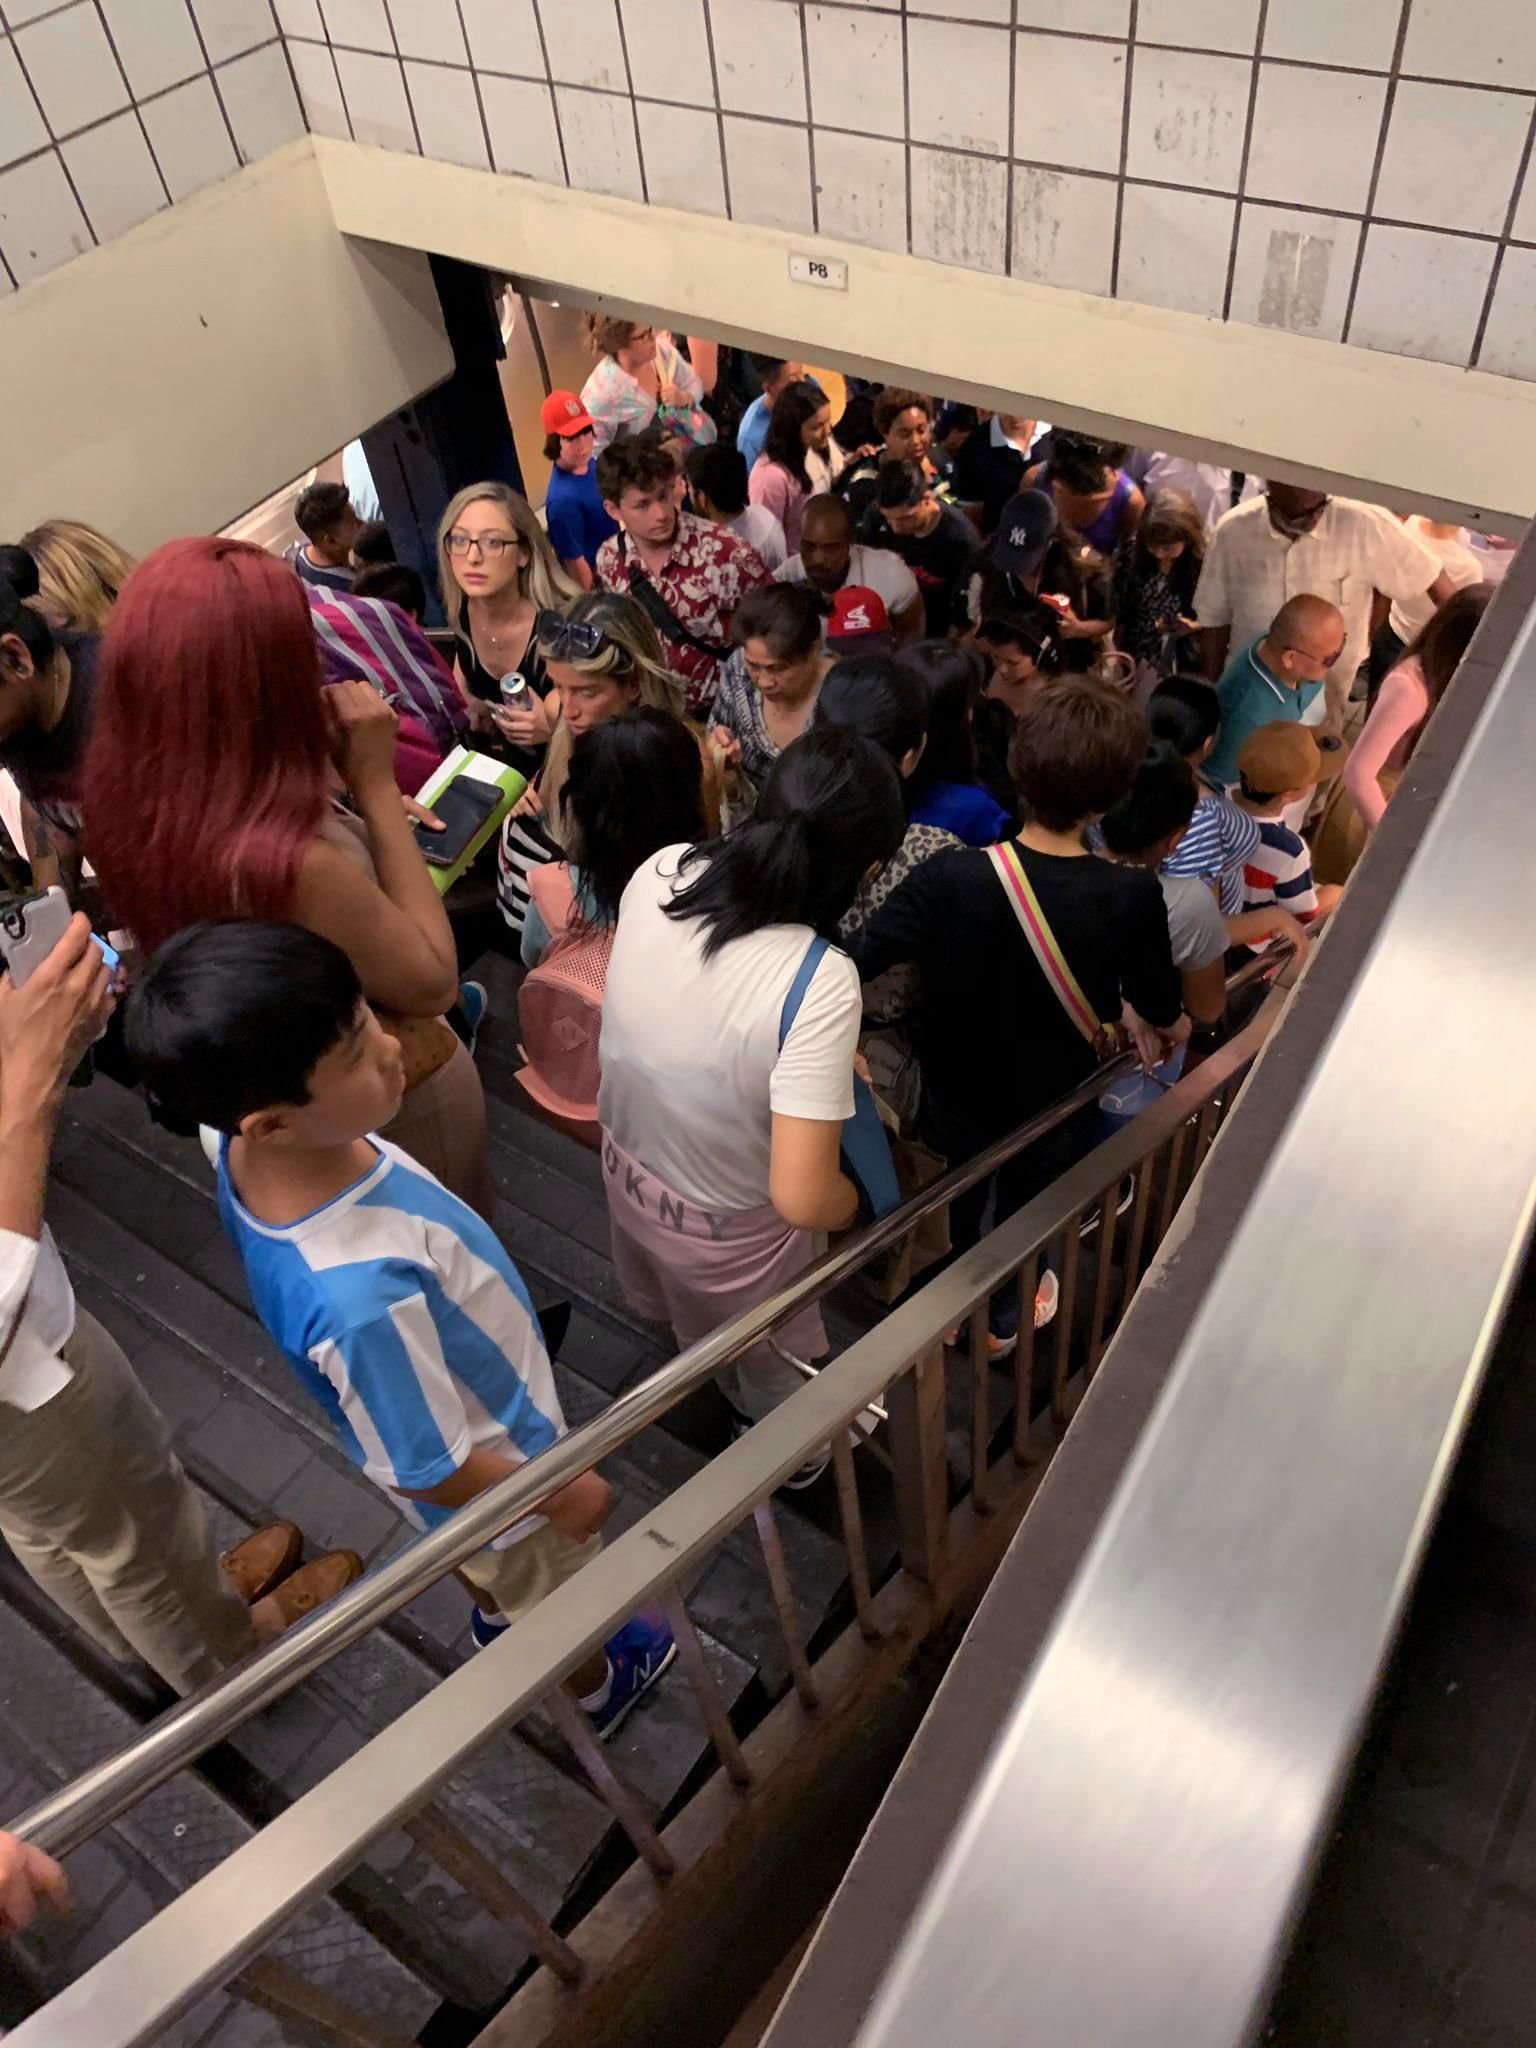 Commuters fill the stairs and line the platform at a New York City subway station as train service on seven lines came to a halt, Friday, July 19, 2019 in New York. (Kenneth Ferrone via AP)